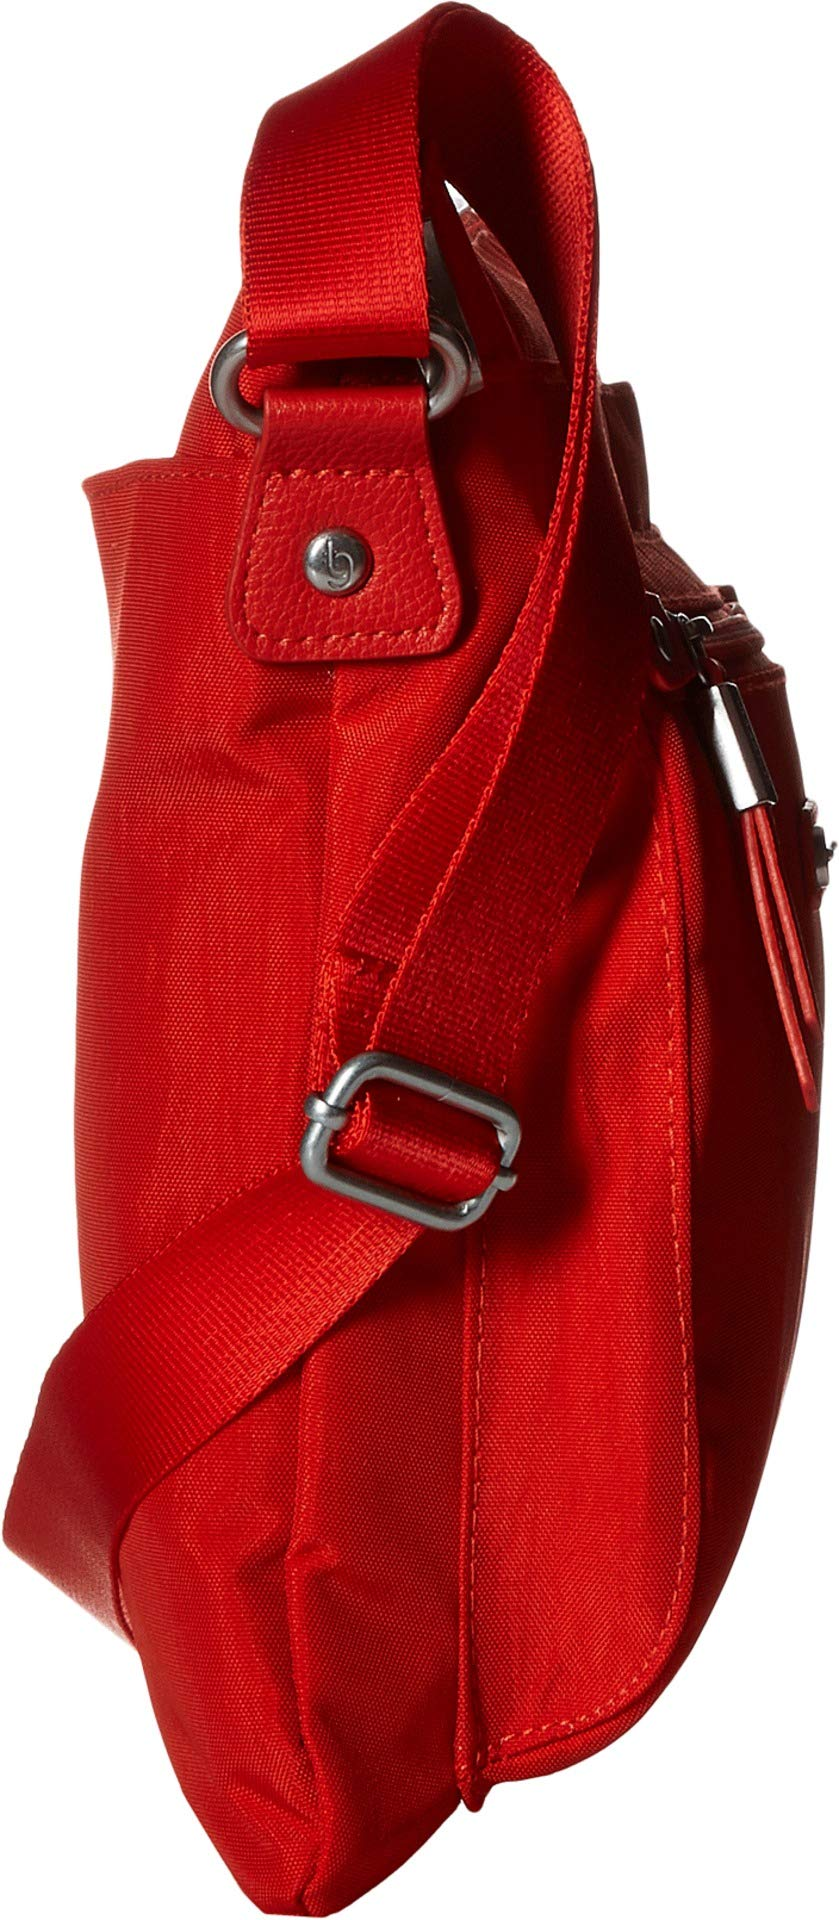 Baggallini Women's New Classic Go Bagg with RFID Phone Wristlet Vibrant Poppy One Size by Baggallini (Image #3)